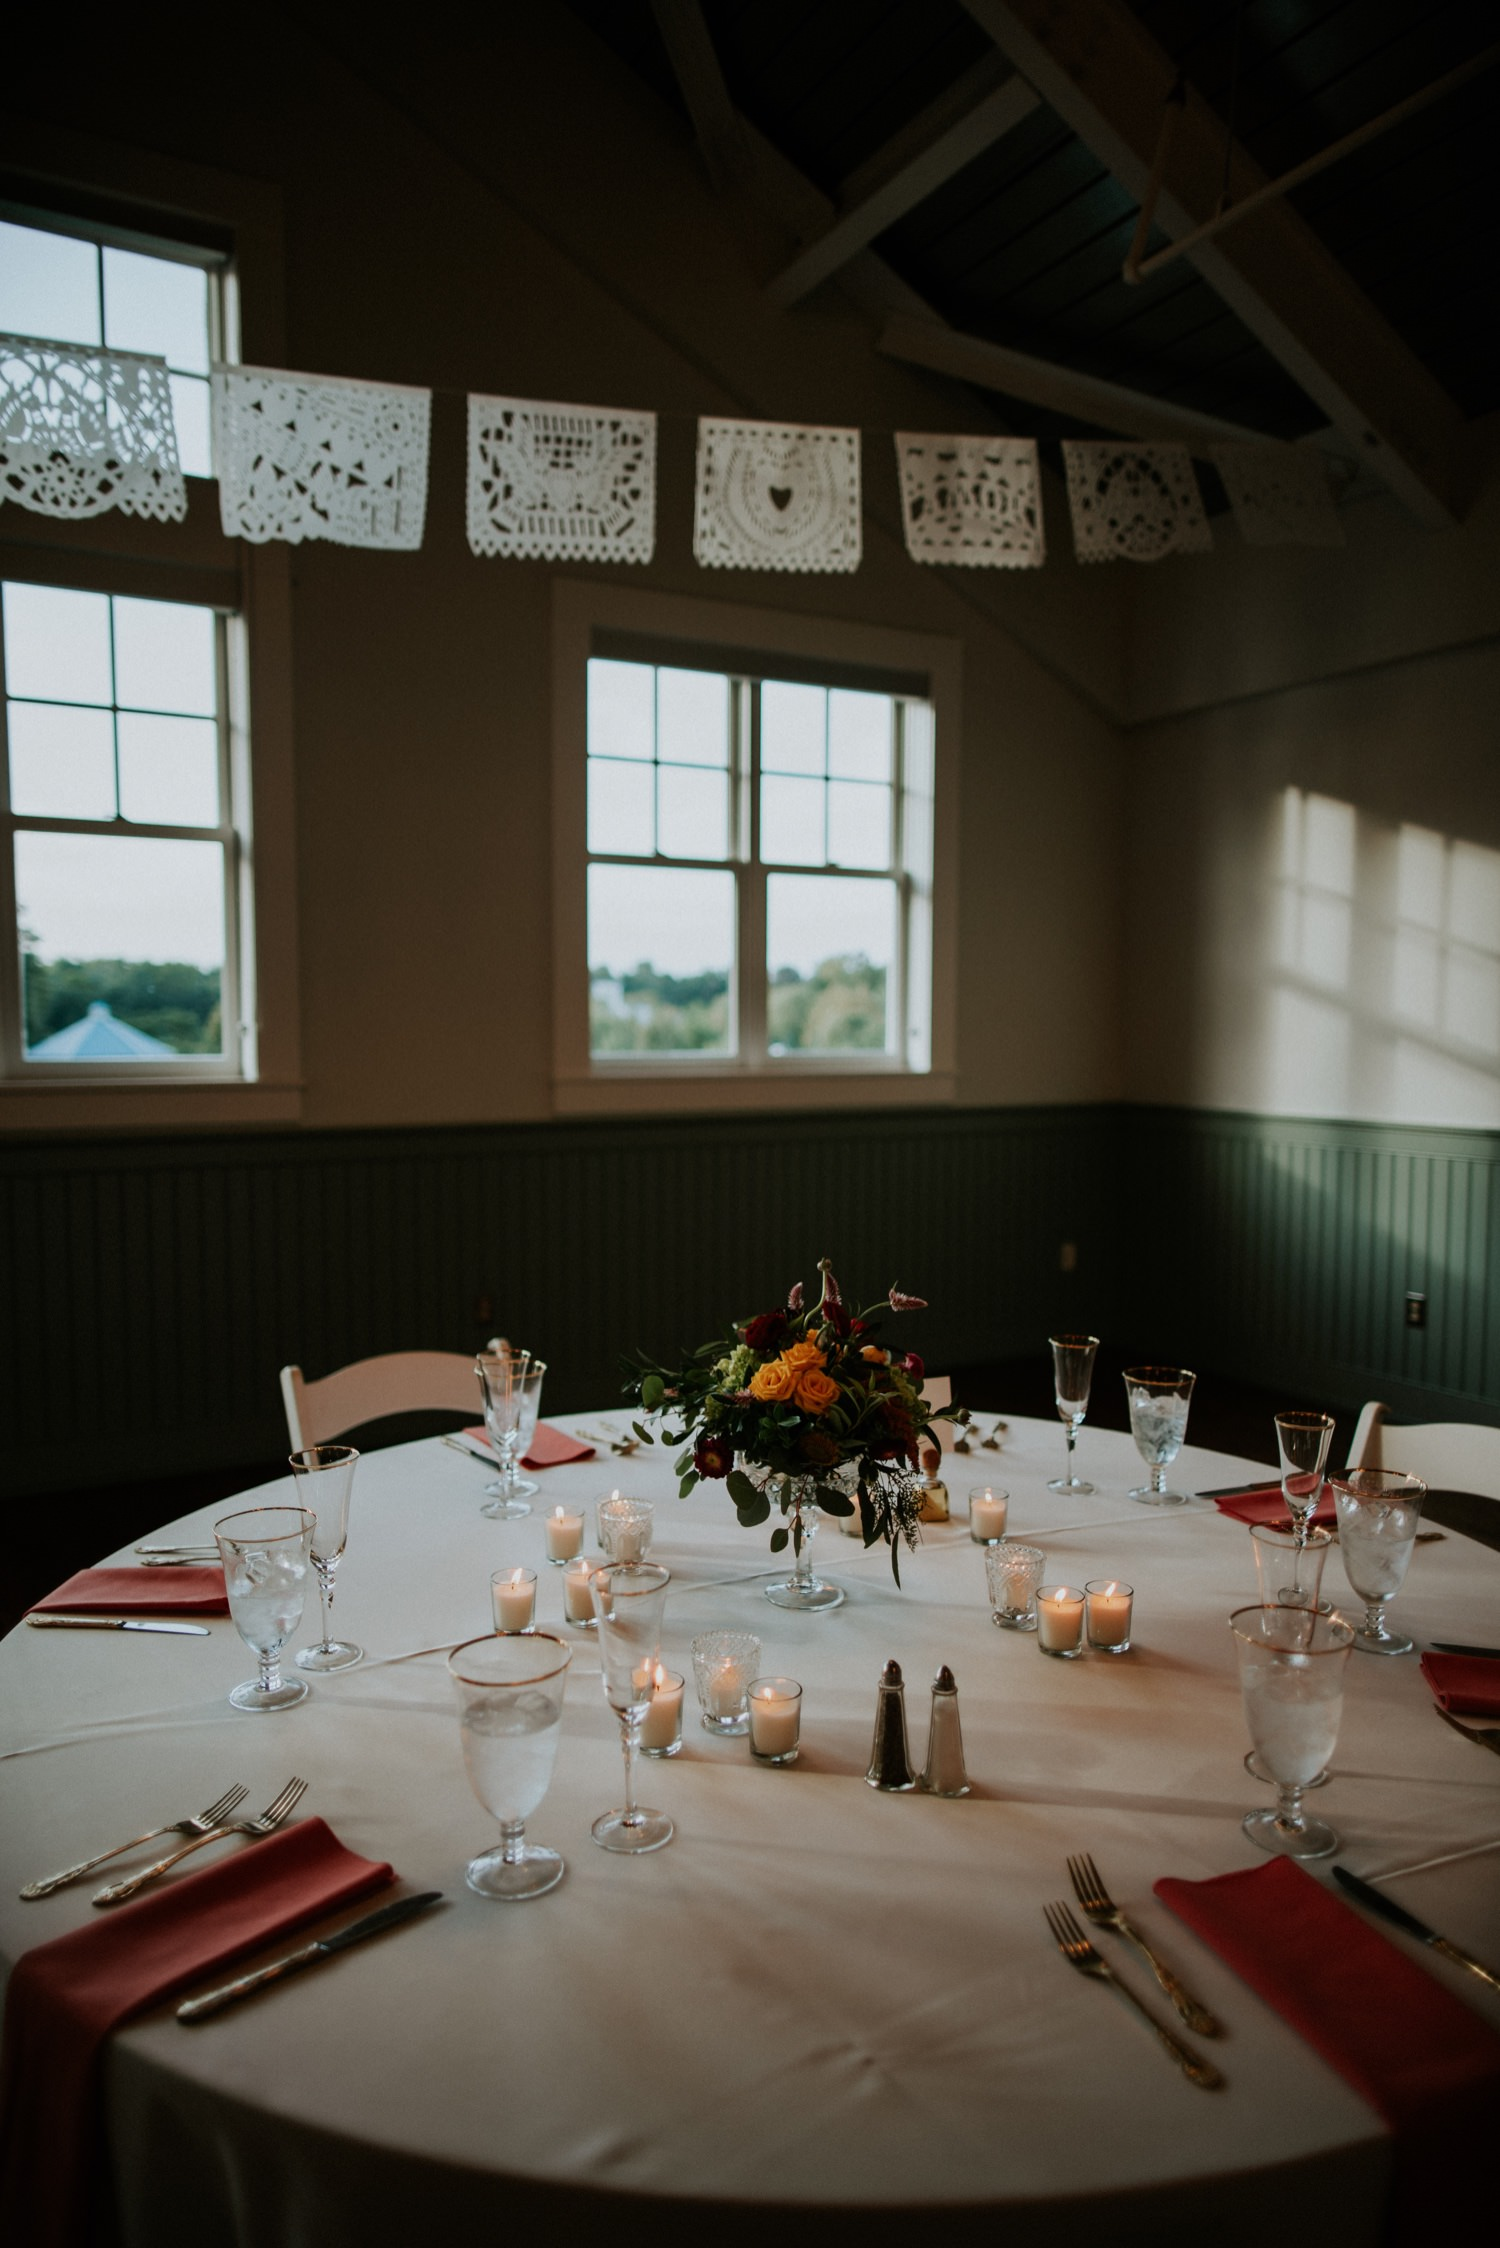 Connecticut Wedding, Glastonbury Boathouse Wedding, Connecticut Wedding Photographer, Glastonbury Wedding Photographer, Connecticut Wedding Photography, Connecticut Bride, Lovely Bride, Glastonbury Connecticut Wedding Photographer, Glastonbury Connecticut Wedding, Lake Wedding, Lake Ceremony, BOHO Wedding, Mexican Wedding, Mexican Wedding Inspiration, Multicultural Wedding, Creative Wedding Photography, Wedding Decorations, Papel Picado,